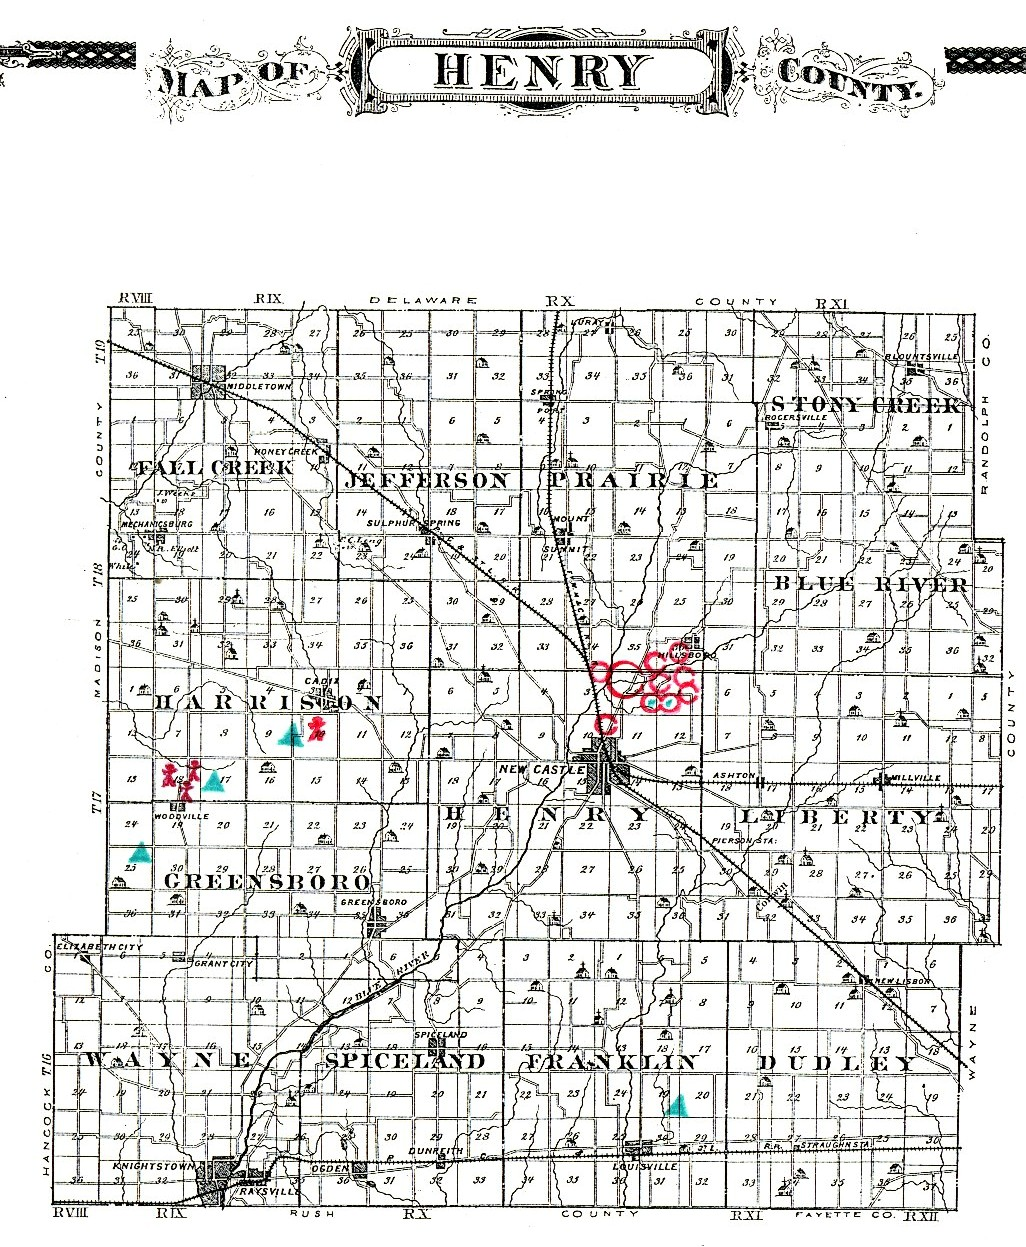 Indiana henry county shirley - Historic Henry County Map Showing Locations Of Burial Mounds And Earthworks In Henry County Indiana With The Exception That The Small Henge At The High